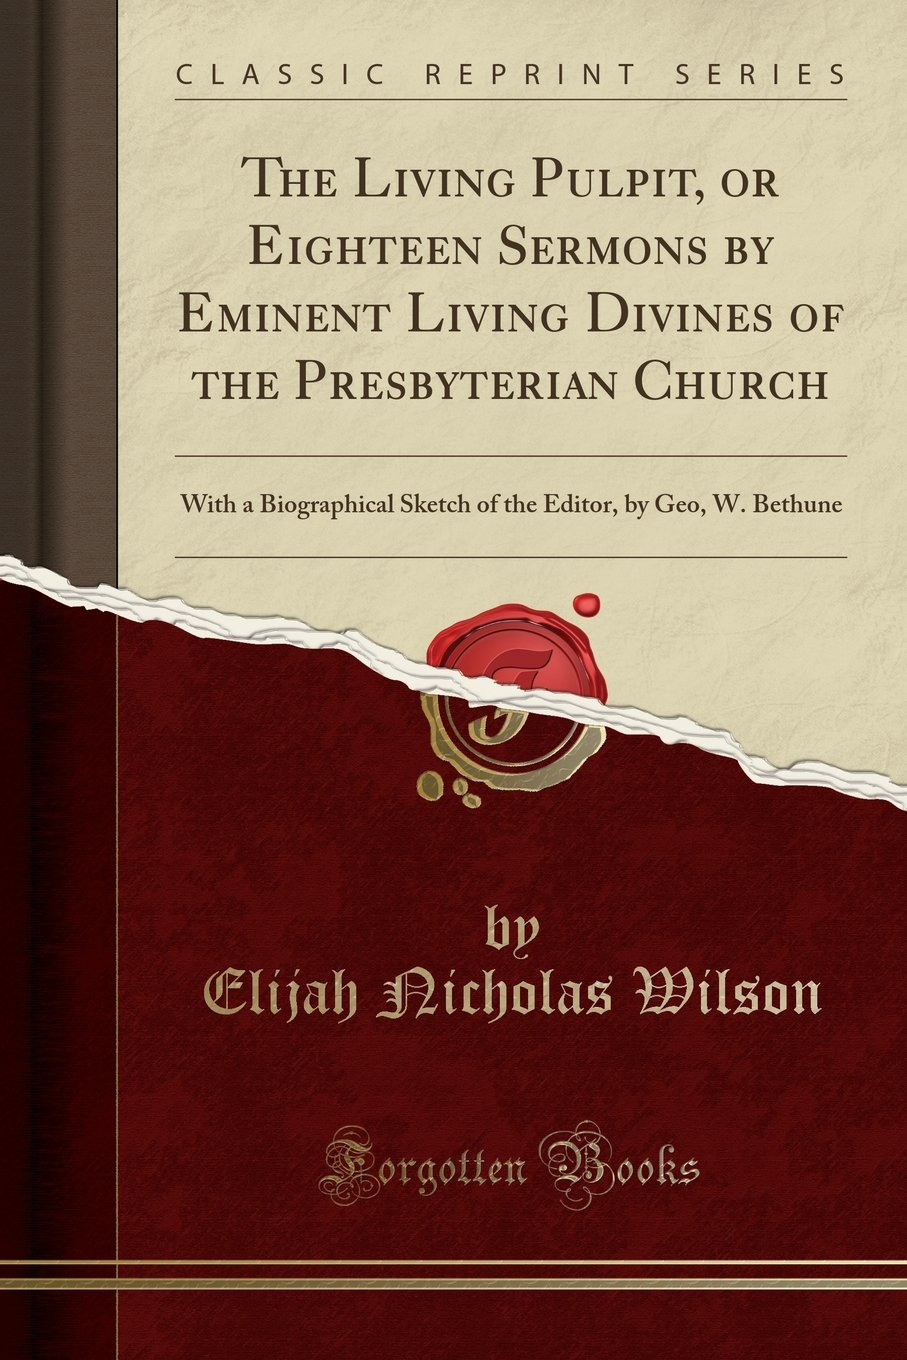 Download The Living Pulpit, or Eighteen Sermons by Eminent Living Divines of the Presbyterian Church: With a Biographical Sketch of the Editor, by Geo, W. Bethune (Classic Reprint) ebook